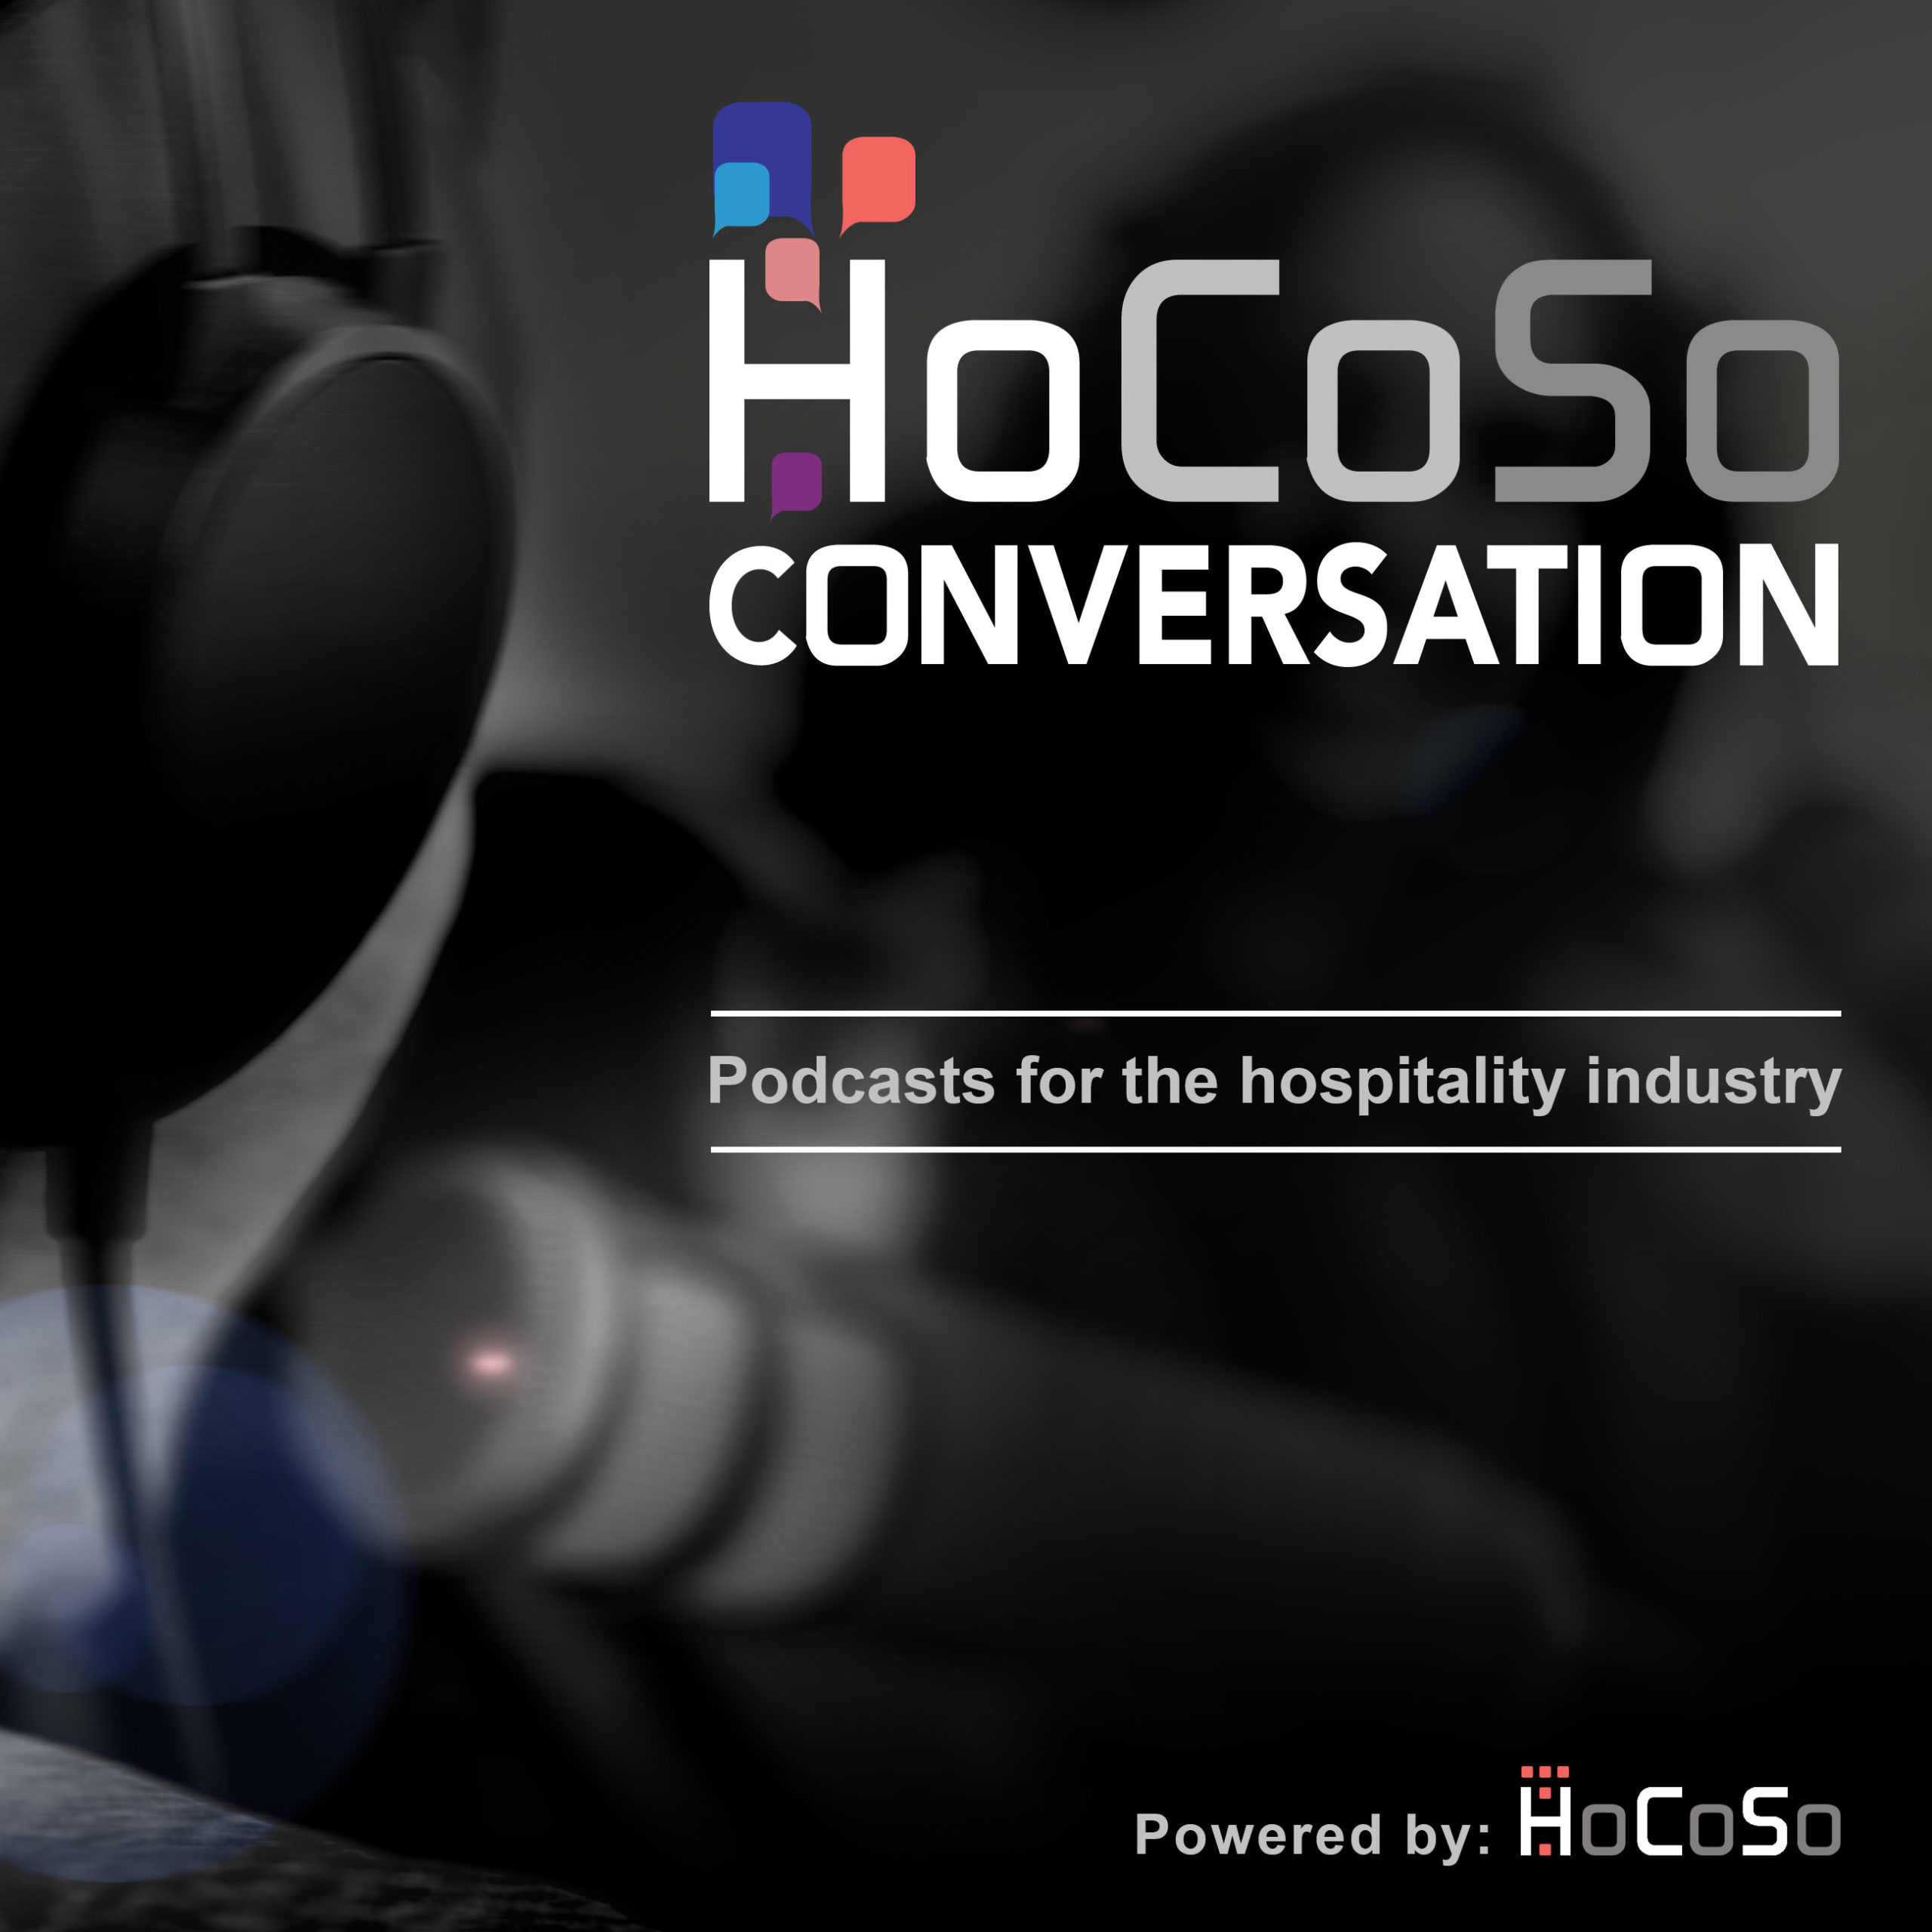 HoCoSo CONVERSATION, part of HoCoSo CONNECT